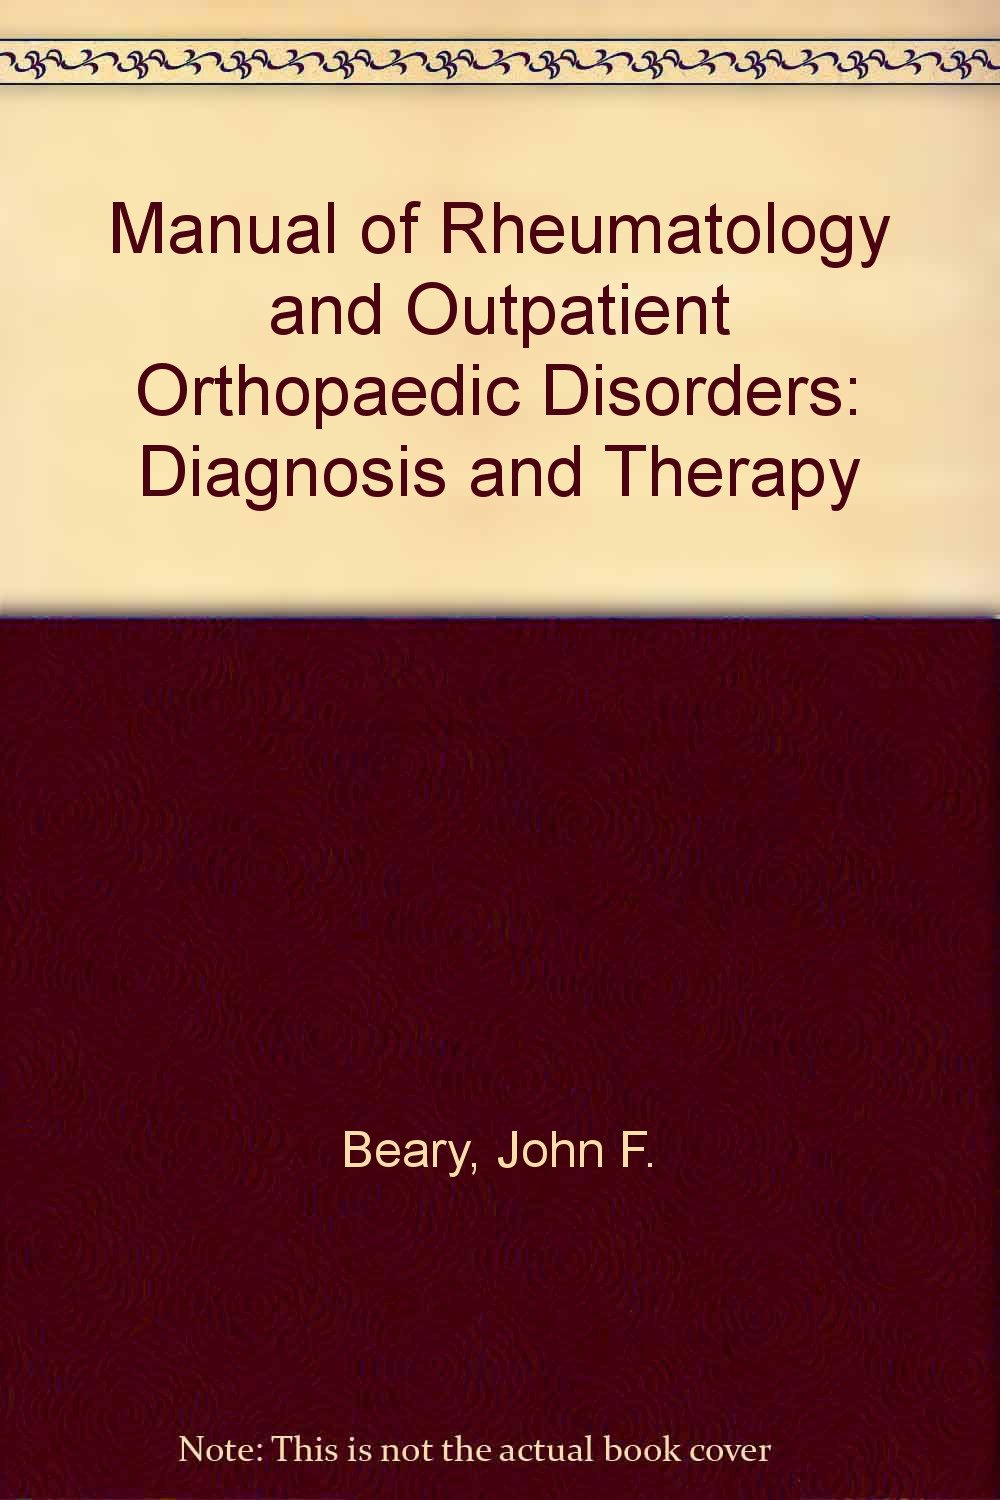 Manual of Rheumatology and Outpatient Orthopaedic Disorders: Diagnosis and  Therapy (A Little, Brown spiral manual): John F. Beary, etc.